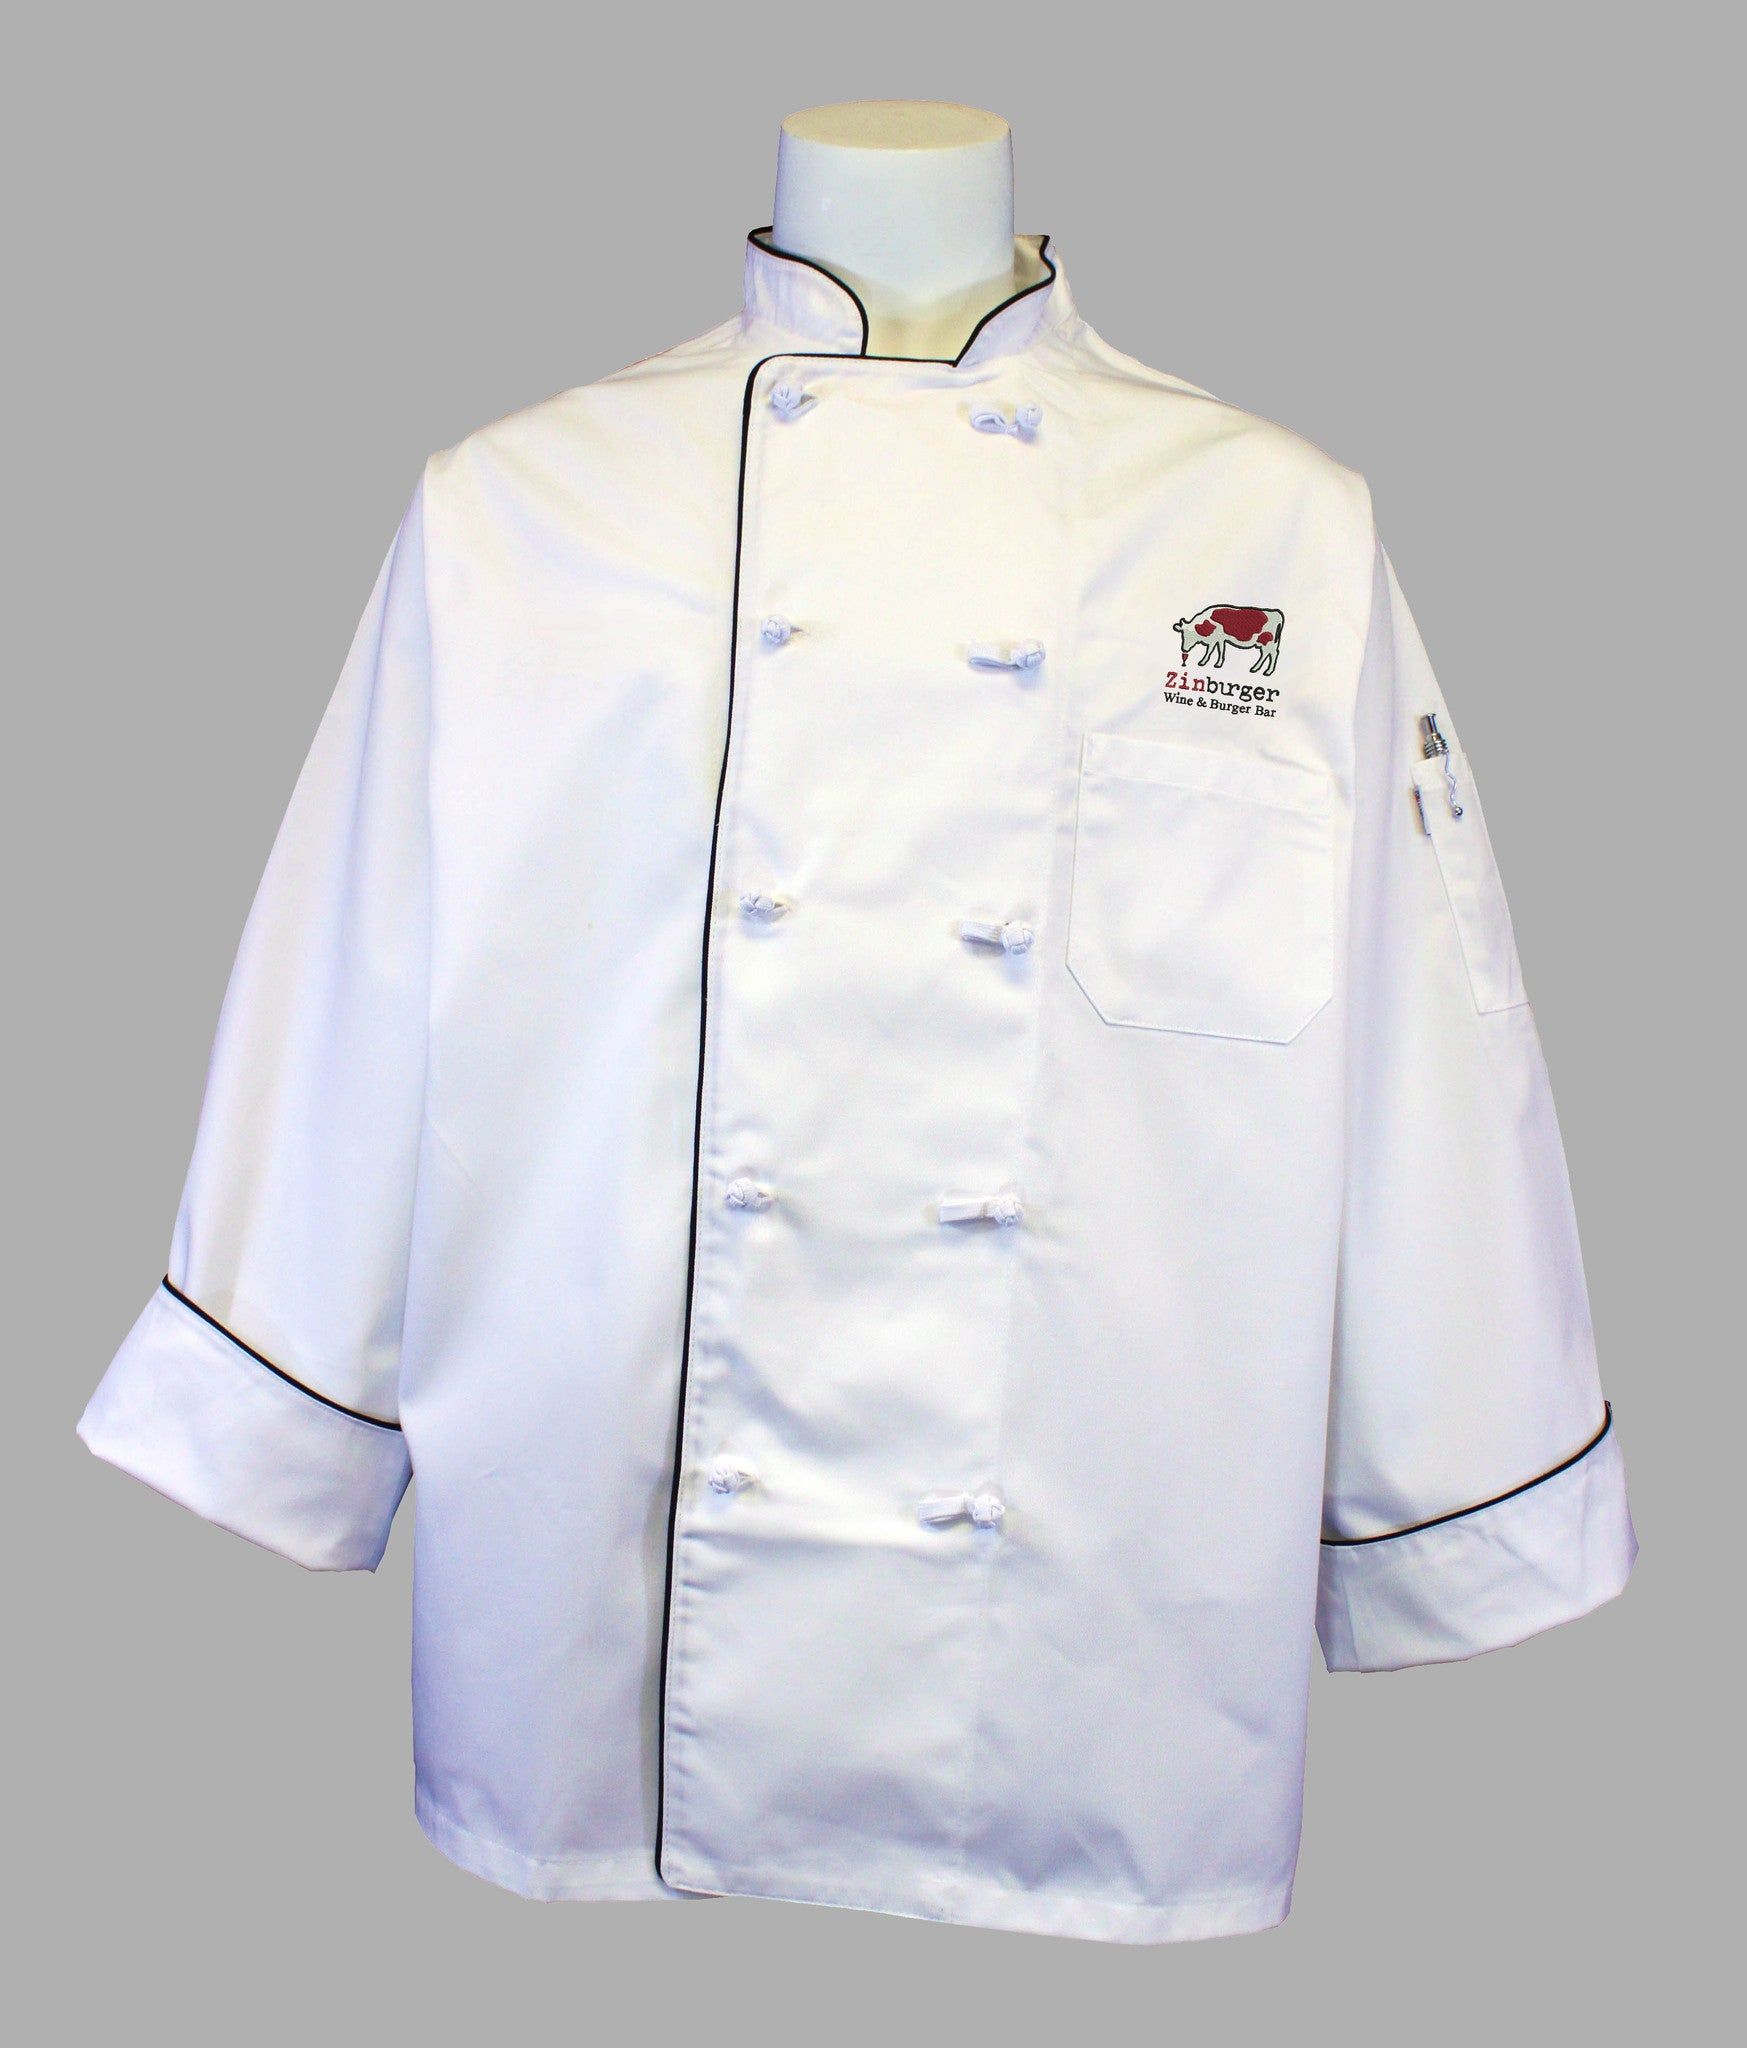 ac5a2d0d48b Chef Jacket For Sale Near Me